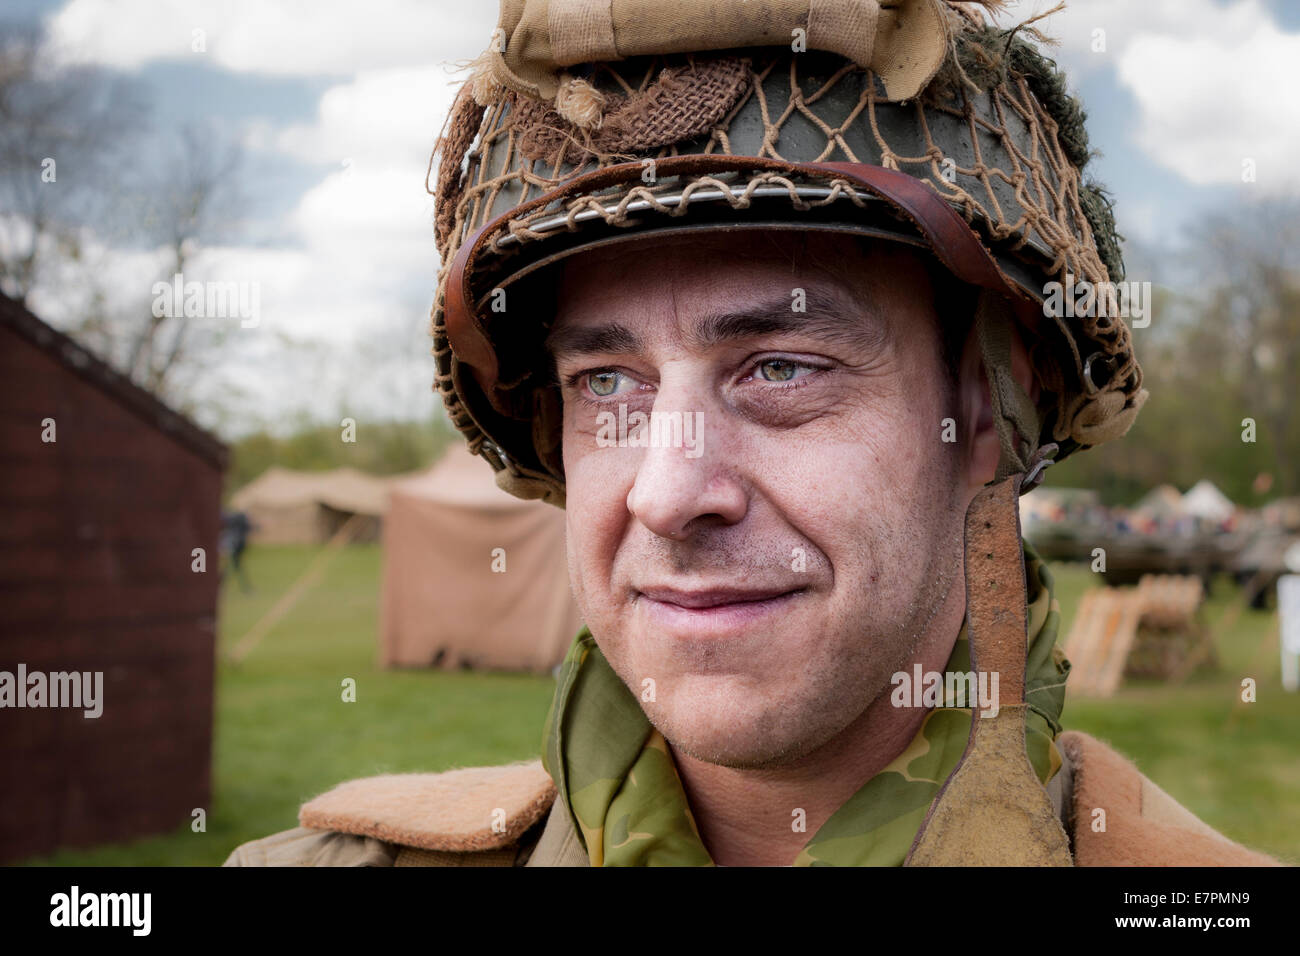 Re-enactment WWII GI soldier - Stock Image